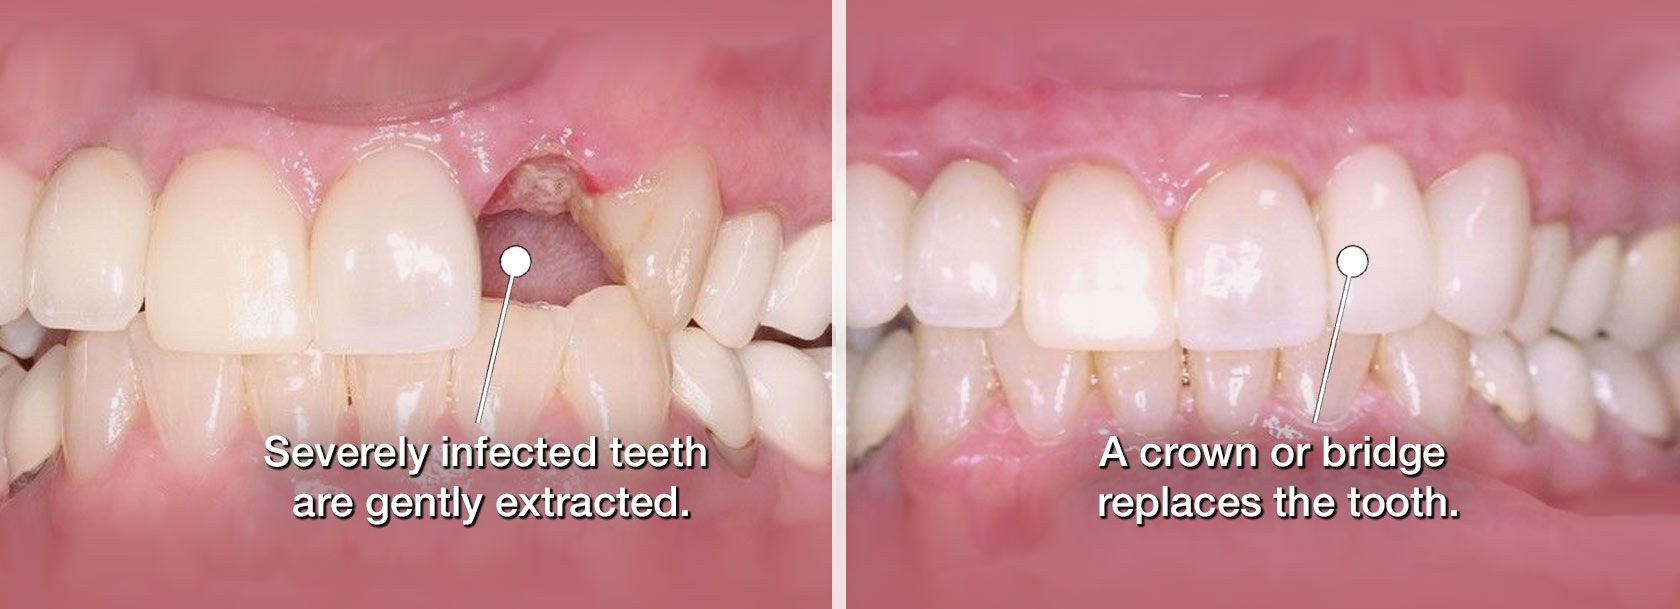 Before and after tooth extraction